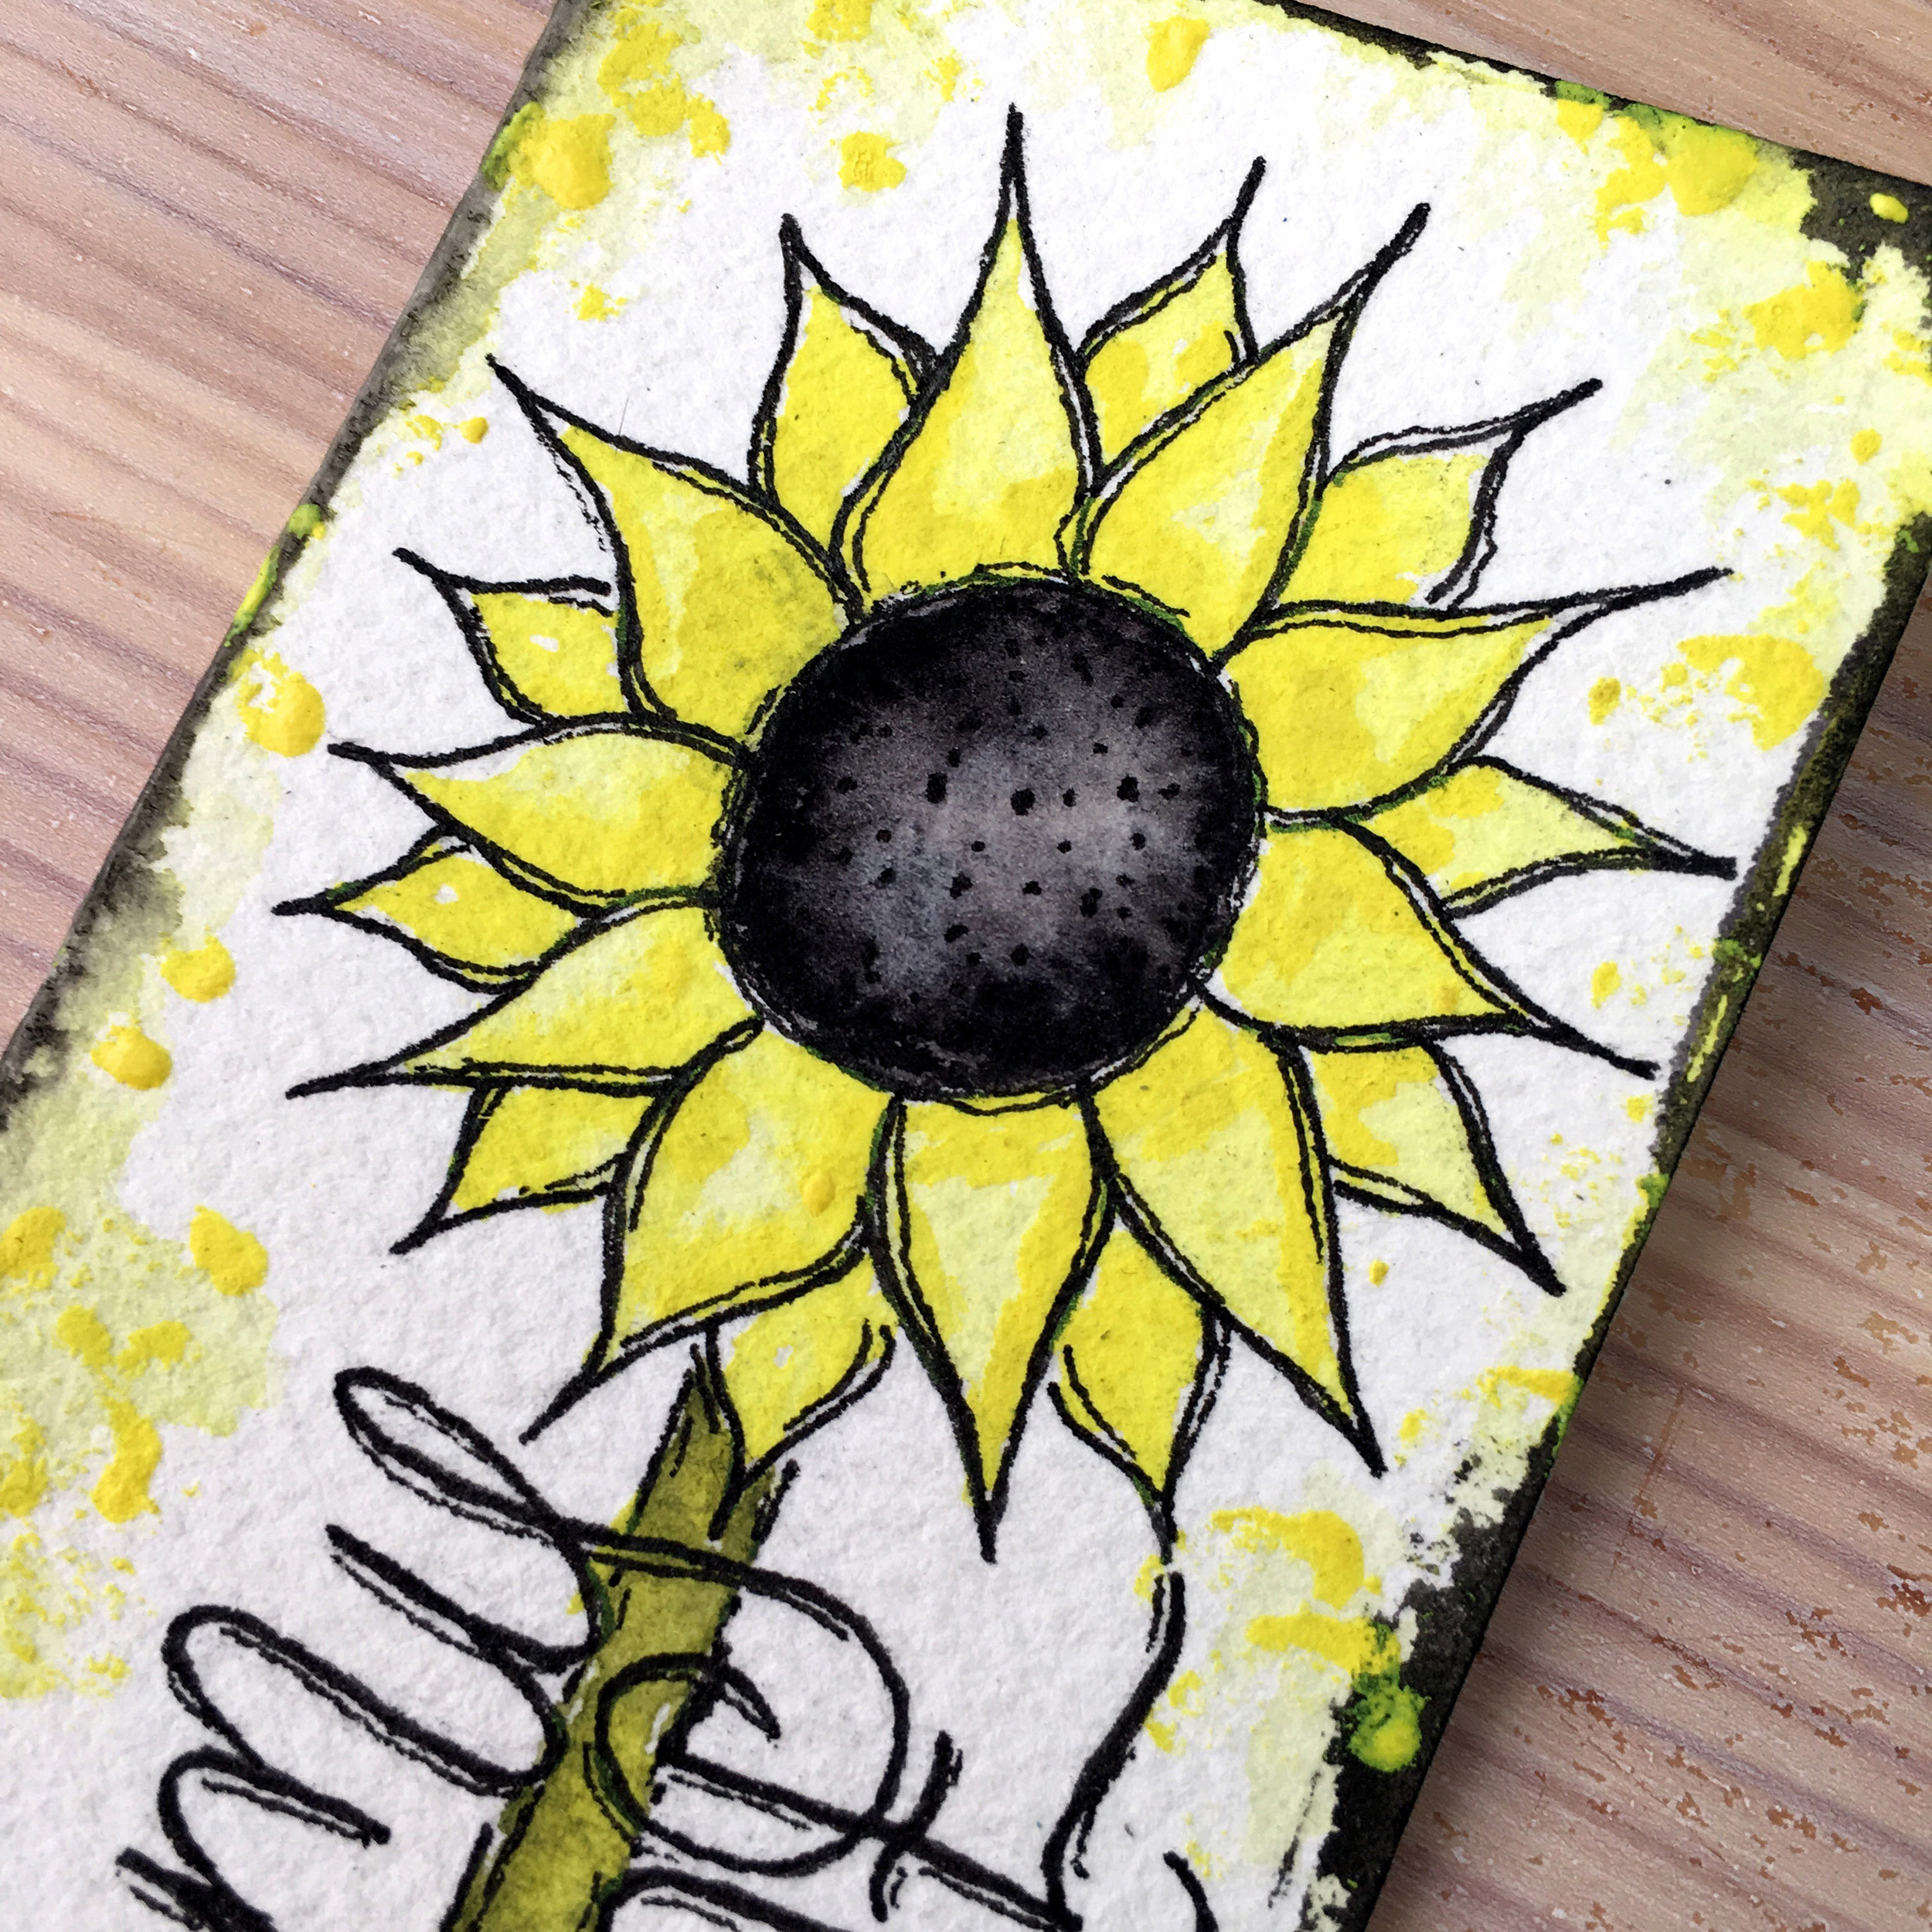 Dani Claire. Mother Daughter Art Challenge. Same Art Supplies, Two Results. Watercolor Art. Watercolor Artist. artsnackschallenge. Art Snacks. Hand Letter Artist. Handlettering. Sunflower art. You Are My Sunshine.